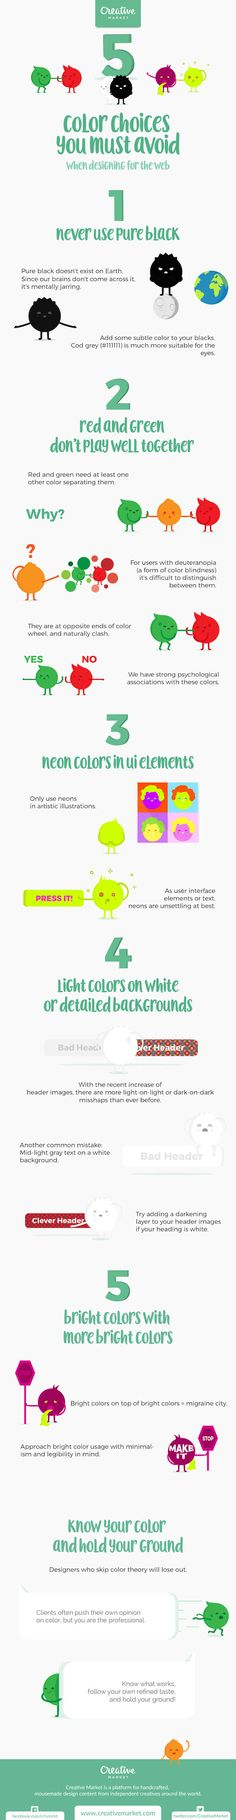 Infographic: Five Color Choices To Avoid When Designing For The Web - DesignTAXI.com